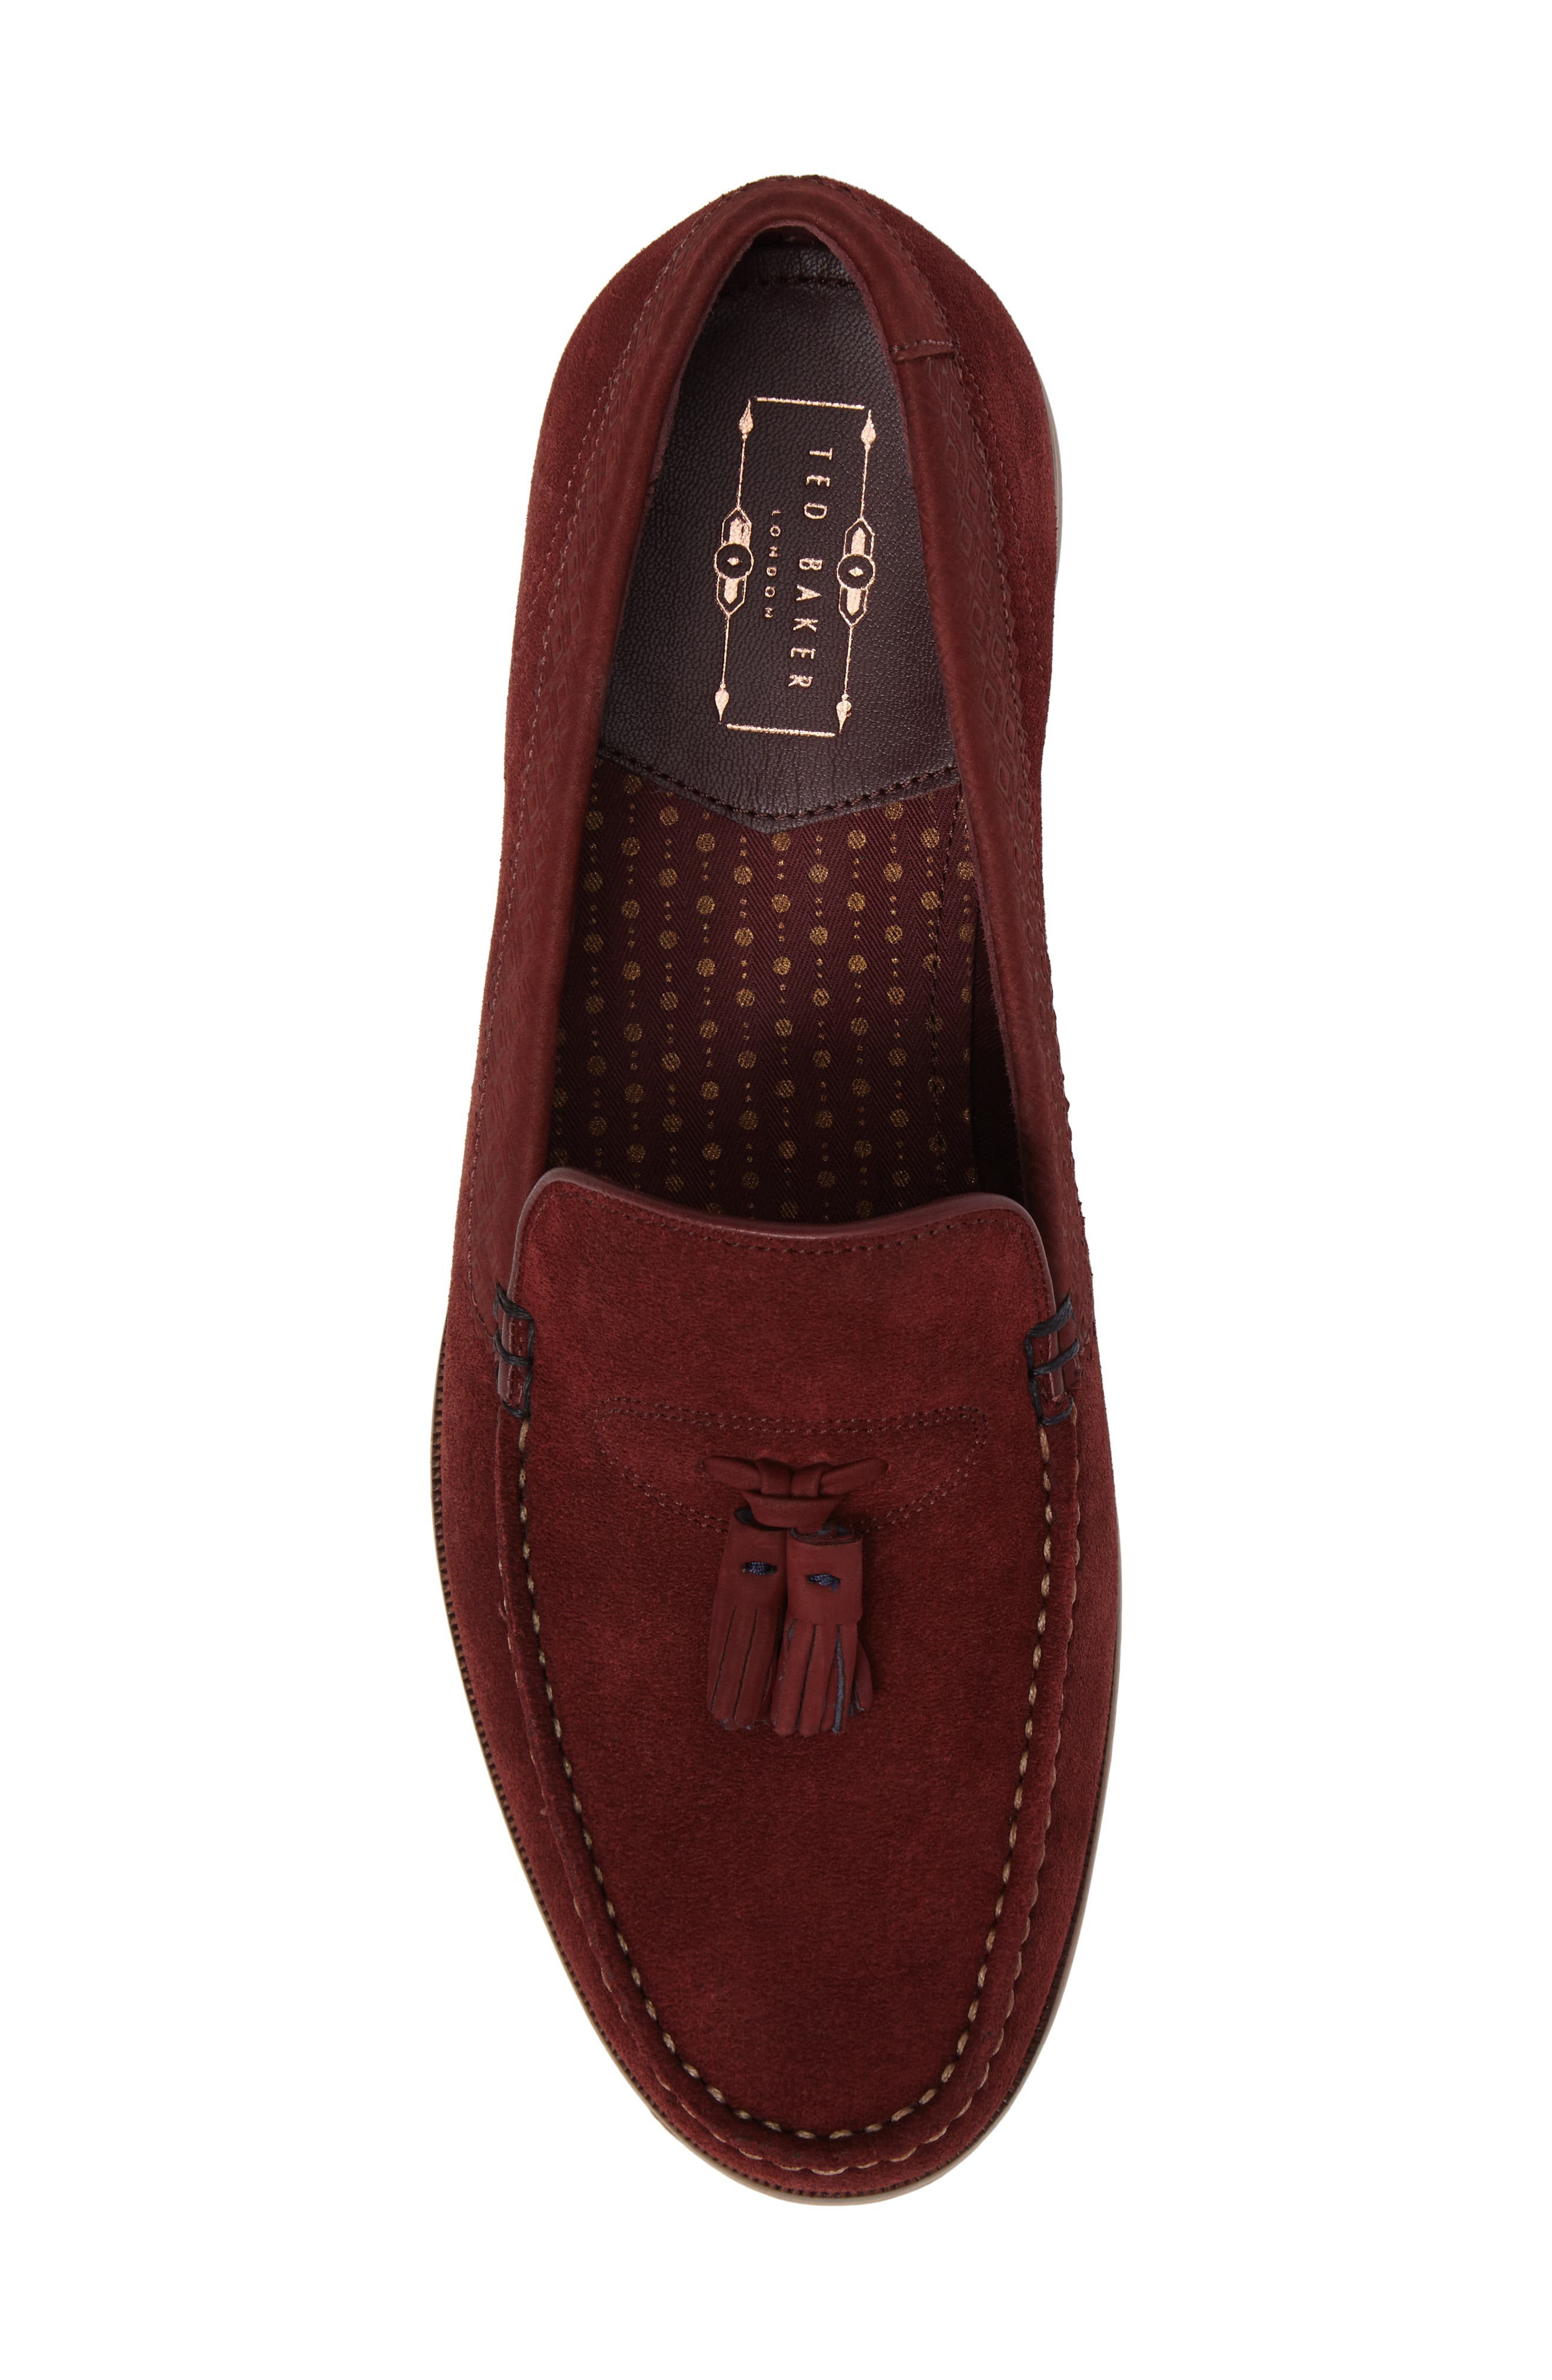 Dougge Tassel Loafer,                             Alternate thumbnail 26, color,